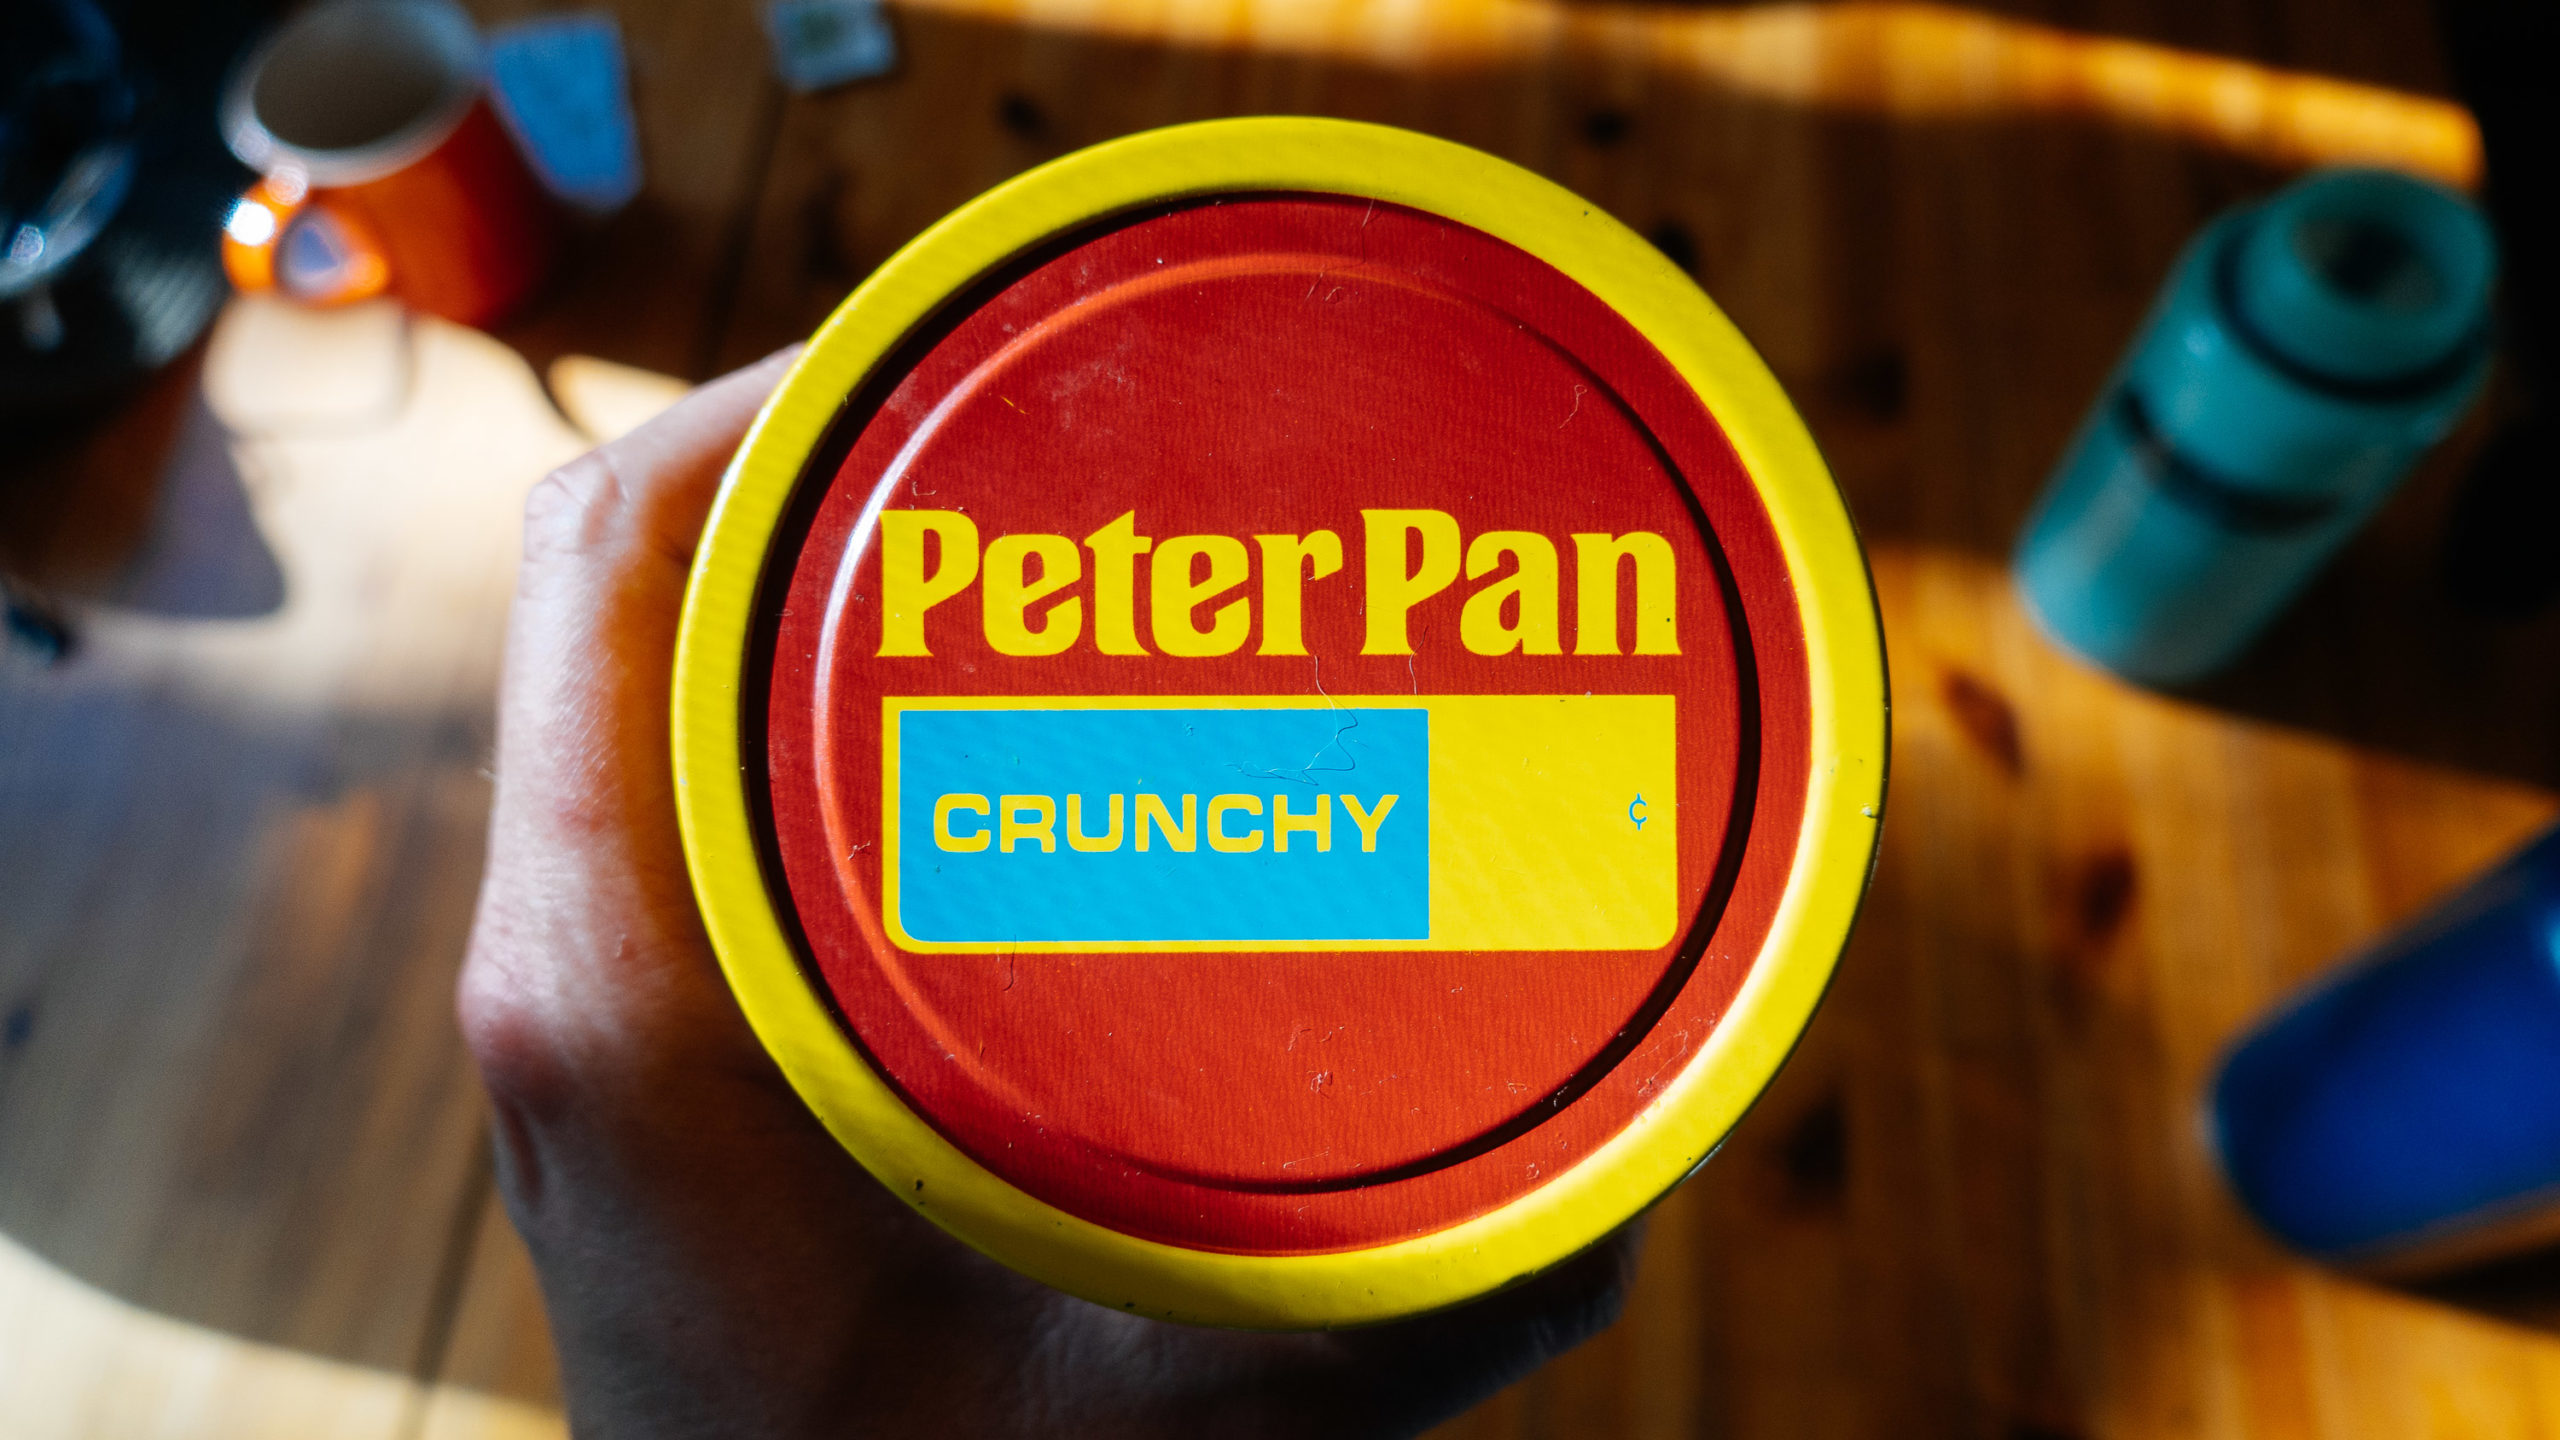 A very old Peter Pan lid for peanut butter